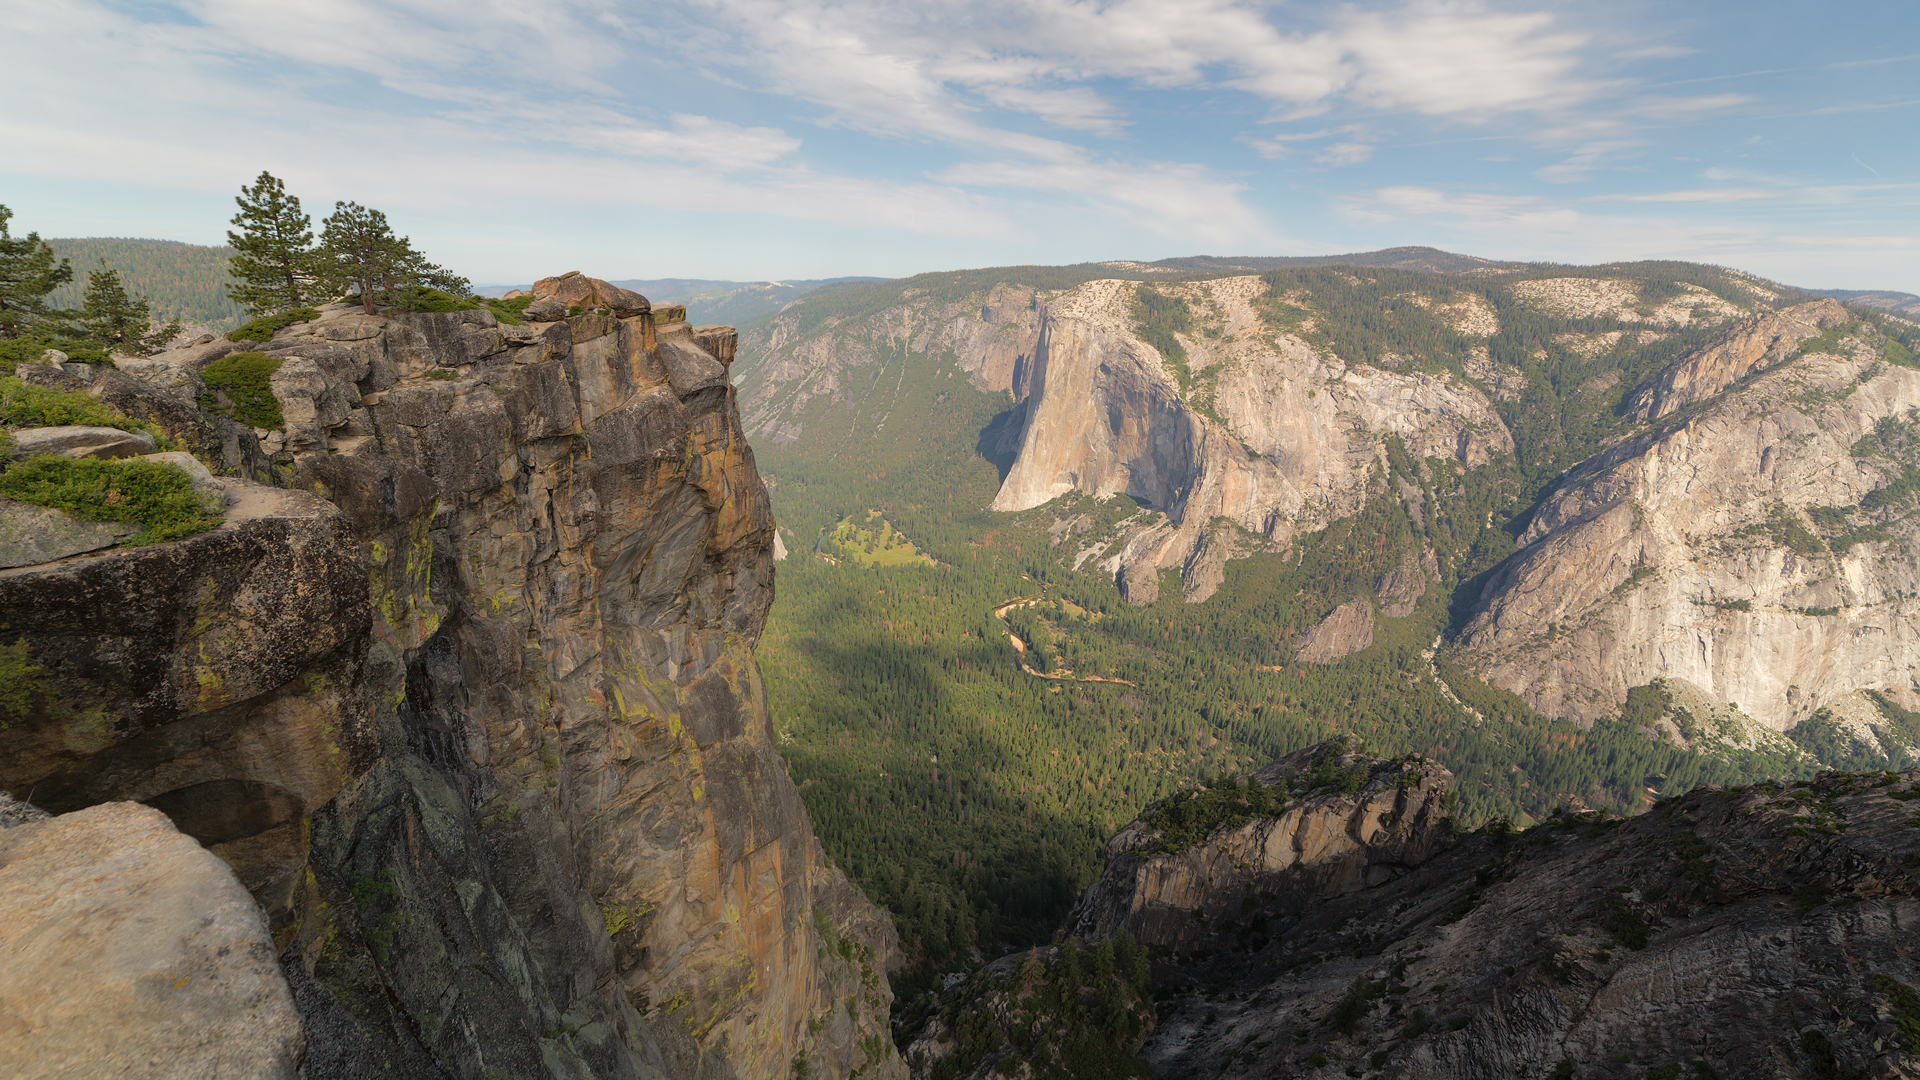 View from above on Yosemite valley from Taft Point. Sierra Nevada mountains, Yosemite National Park. (Credit: iStock / Getty Images Plus)